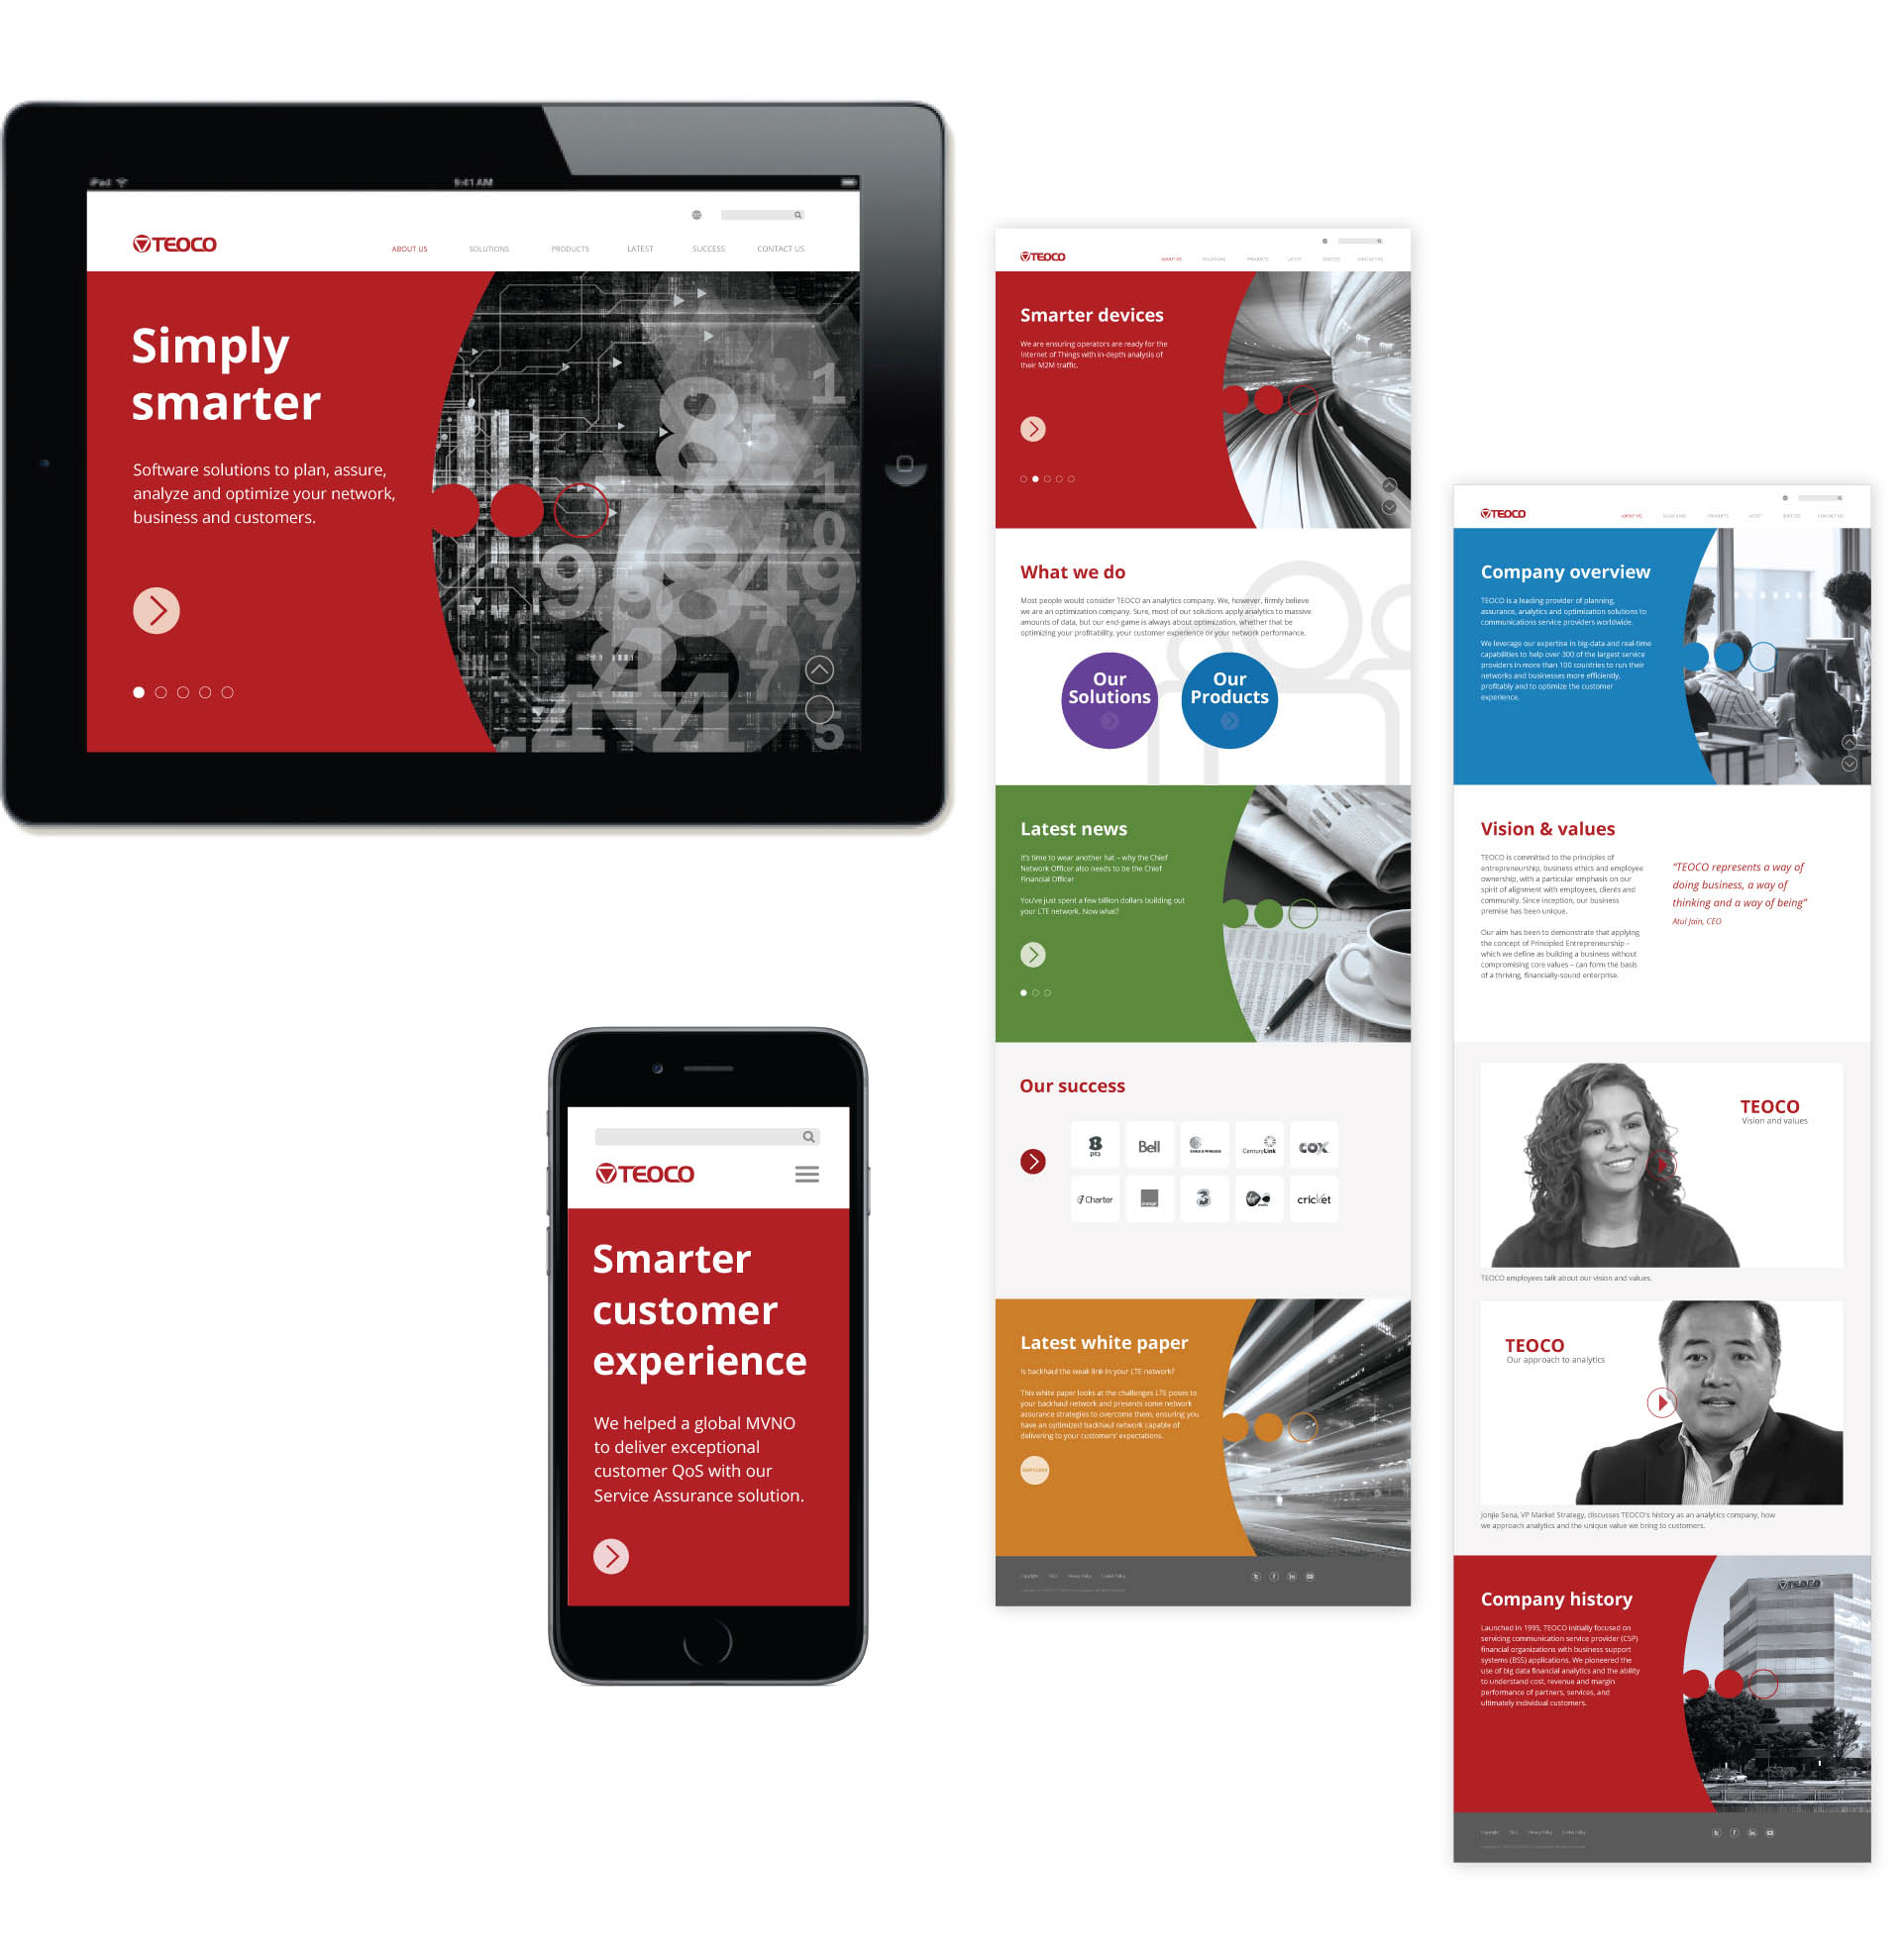 Visual language and web design for TEOCO – a leading provider of planning, assurance, analytics and optimization solutions to communications service providers worldwide